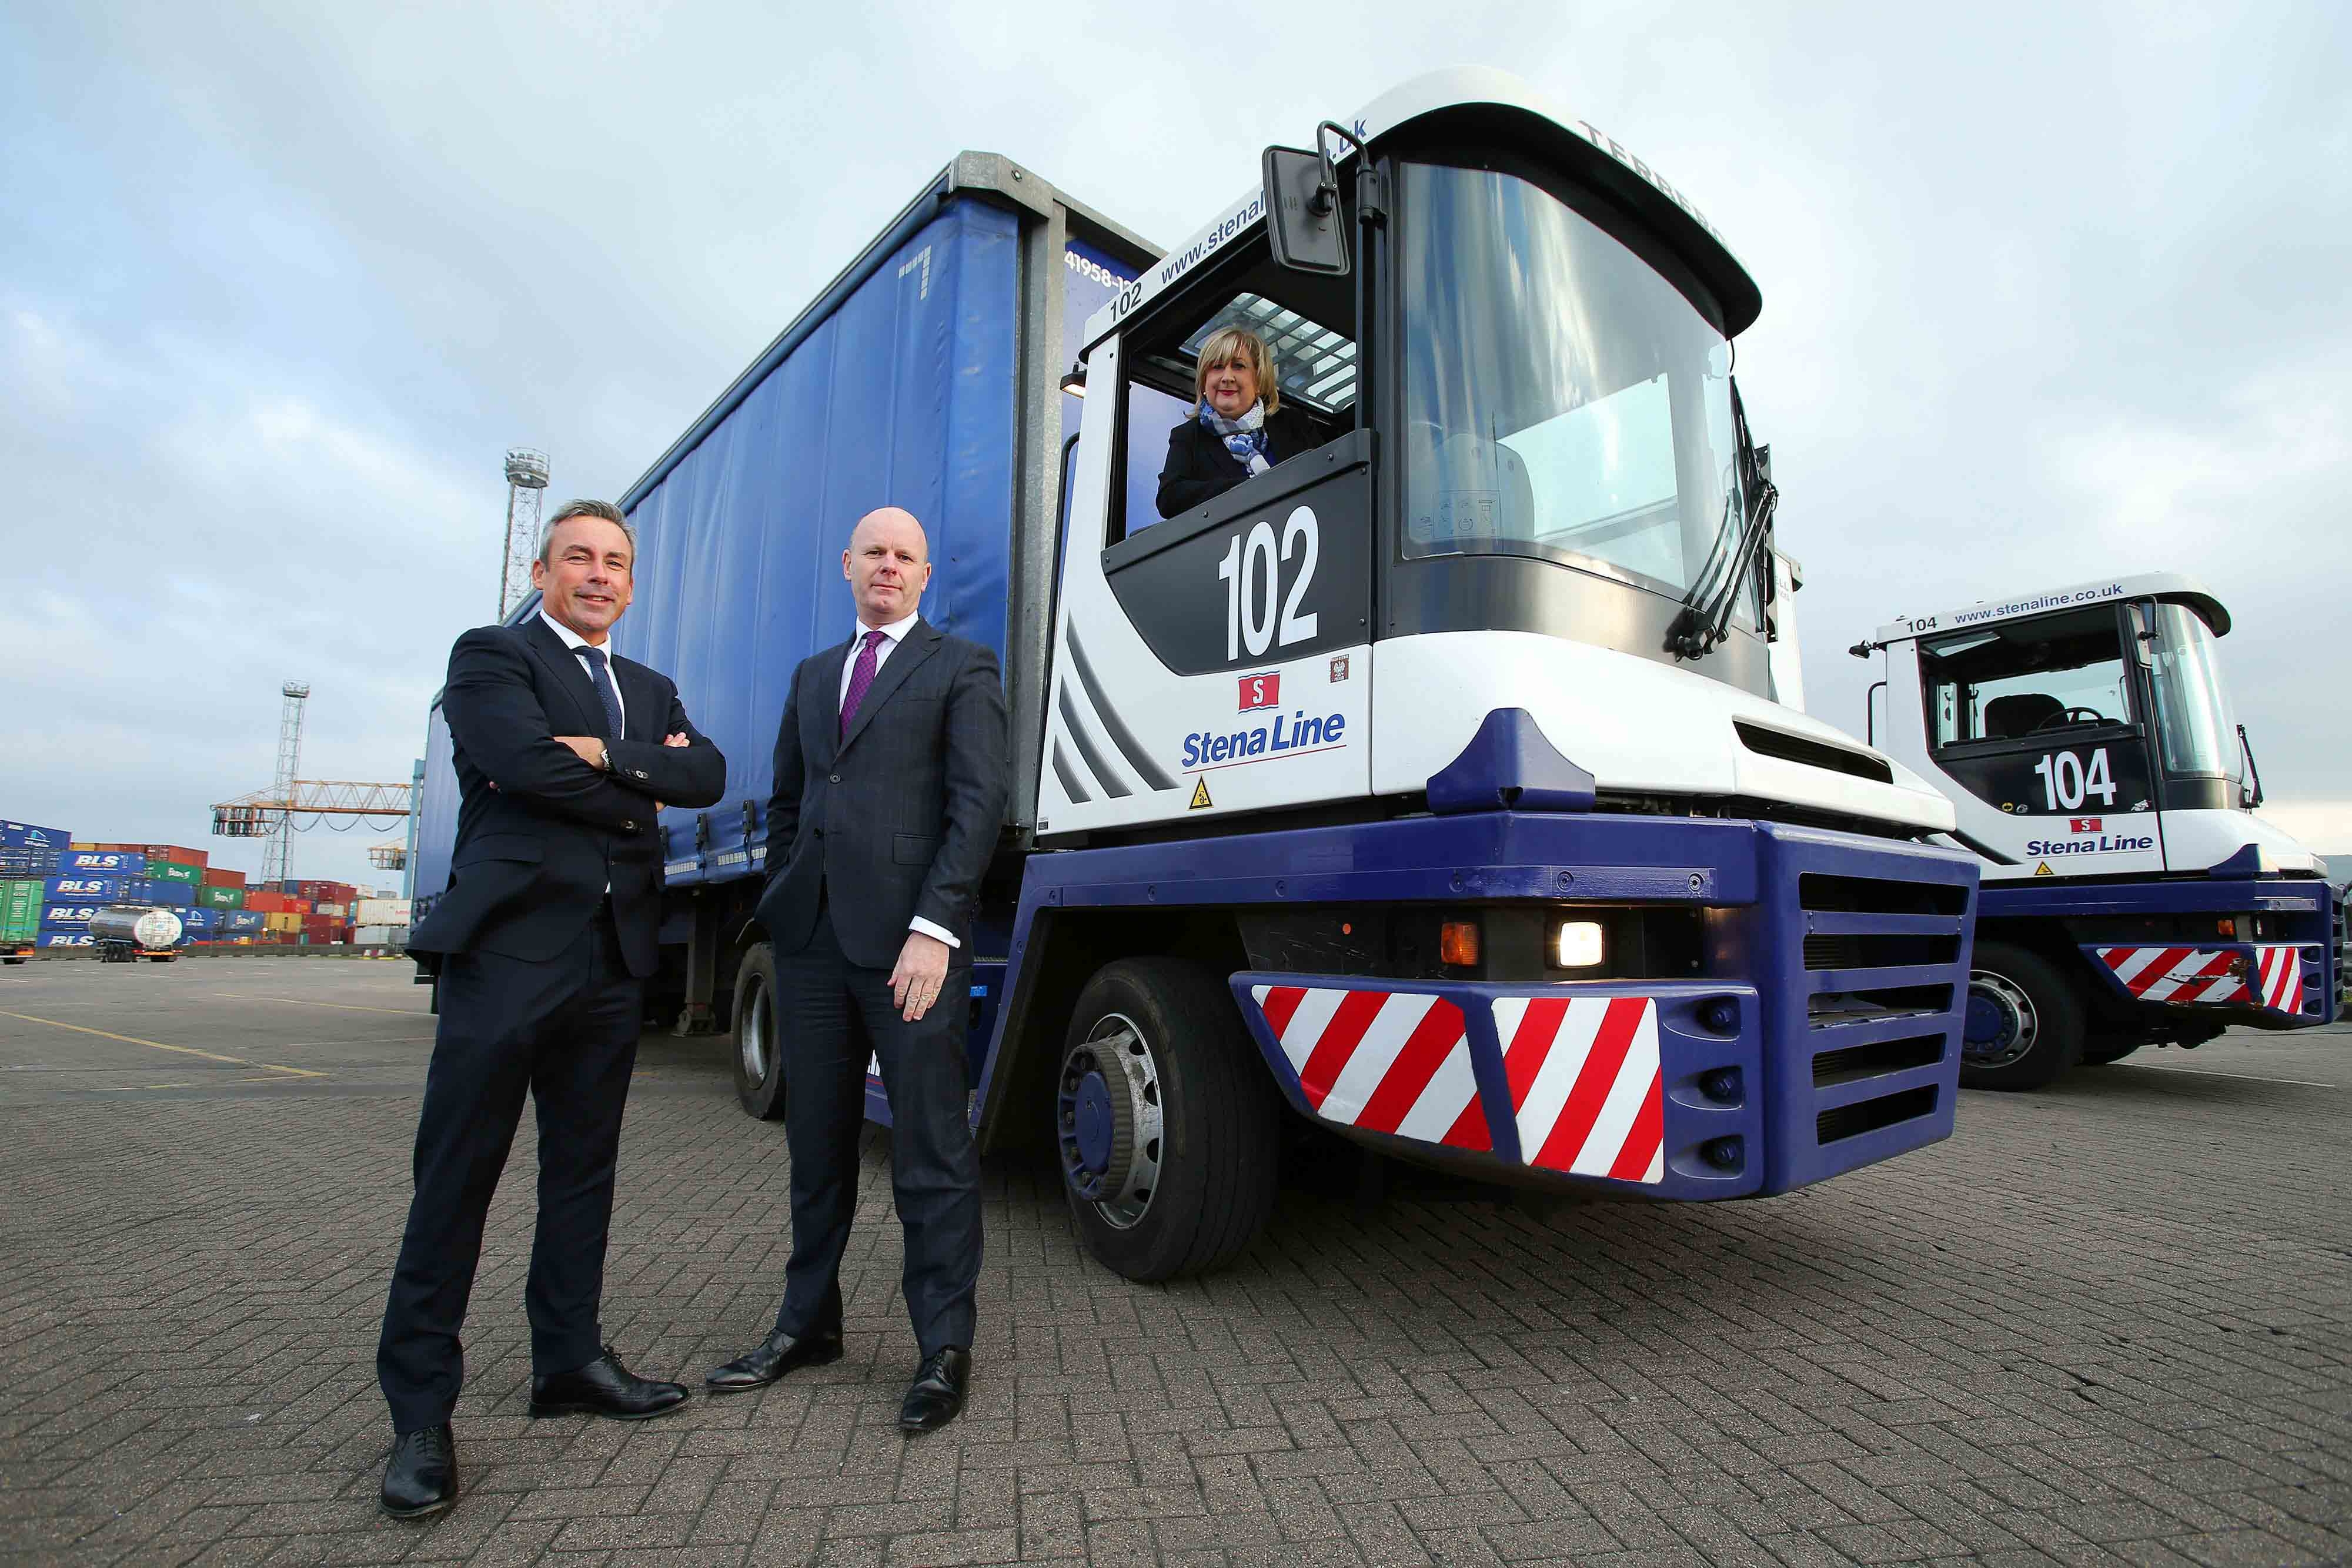 IN THE DRIVING SEAT...Leading ferry company Stena Line has posted a record year for freight traffic volumes on its Belfast Harbour routes to Cairnryan, Liverpool and Heysham in 2016. For the first time in its history, Stena Line has carried over 500, 000 freight units through Belfast Harbour. Pictured celebrating the success are (left to right): Paul Grant, Stena Line's Trade Director (Irish Sea North), Joe O'Neill, Commercial Director, Belfast Harbour and Anna Breen, Stena Line's Freight Commercial Manager (Irish Sea North).